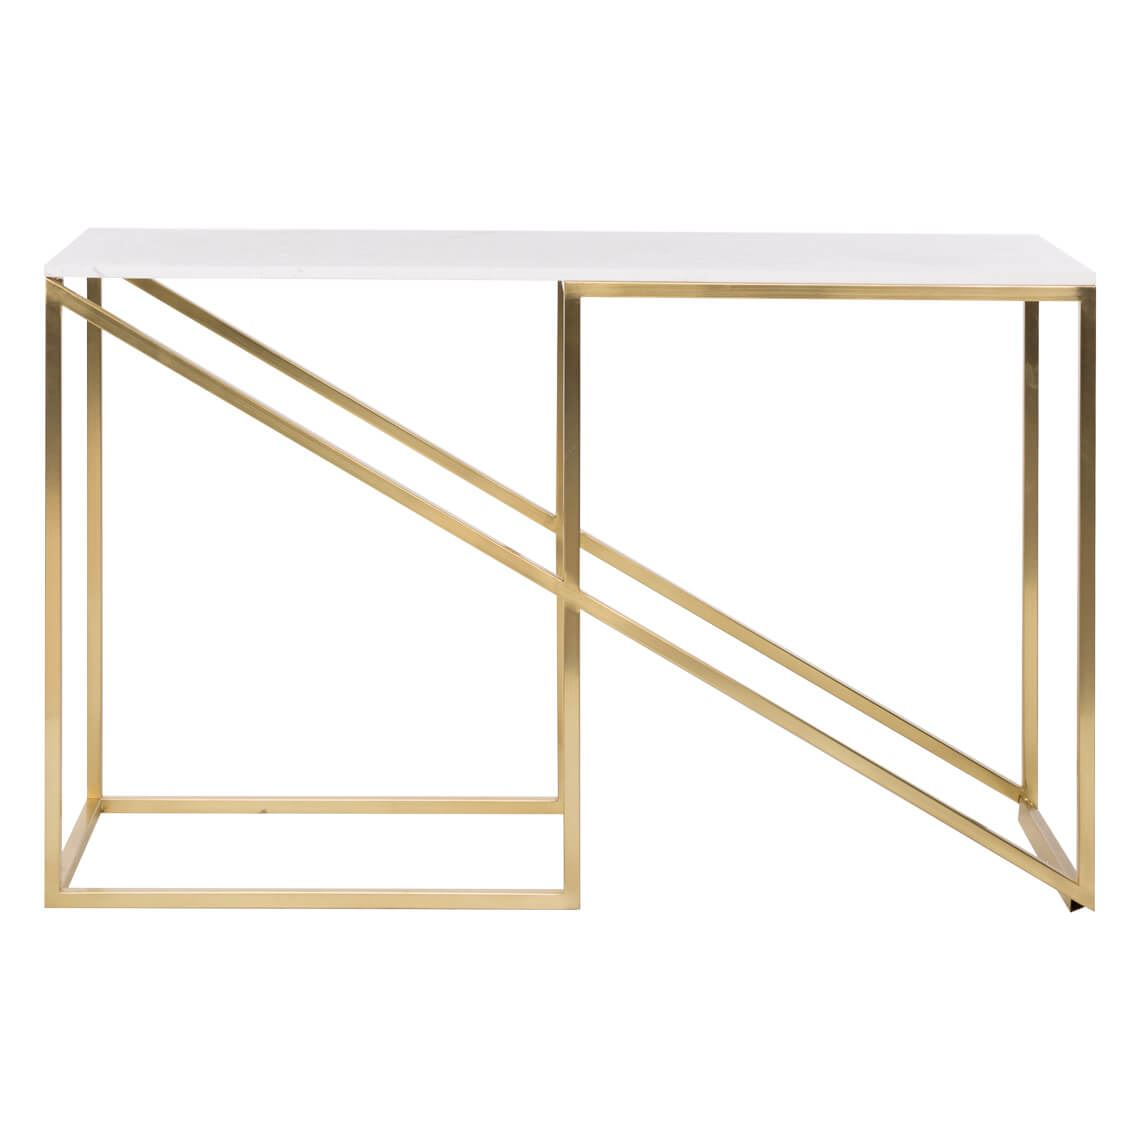 glass sofa console table fresh gold and luxurious queen mid seagrass coffee accent beach themed coastal trunk full size retro couch behind bedside replacement cushions for patio